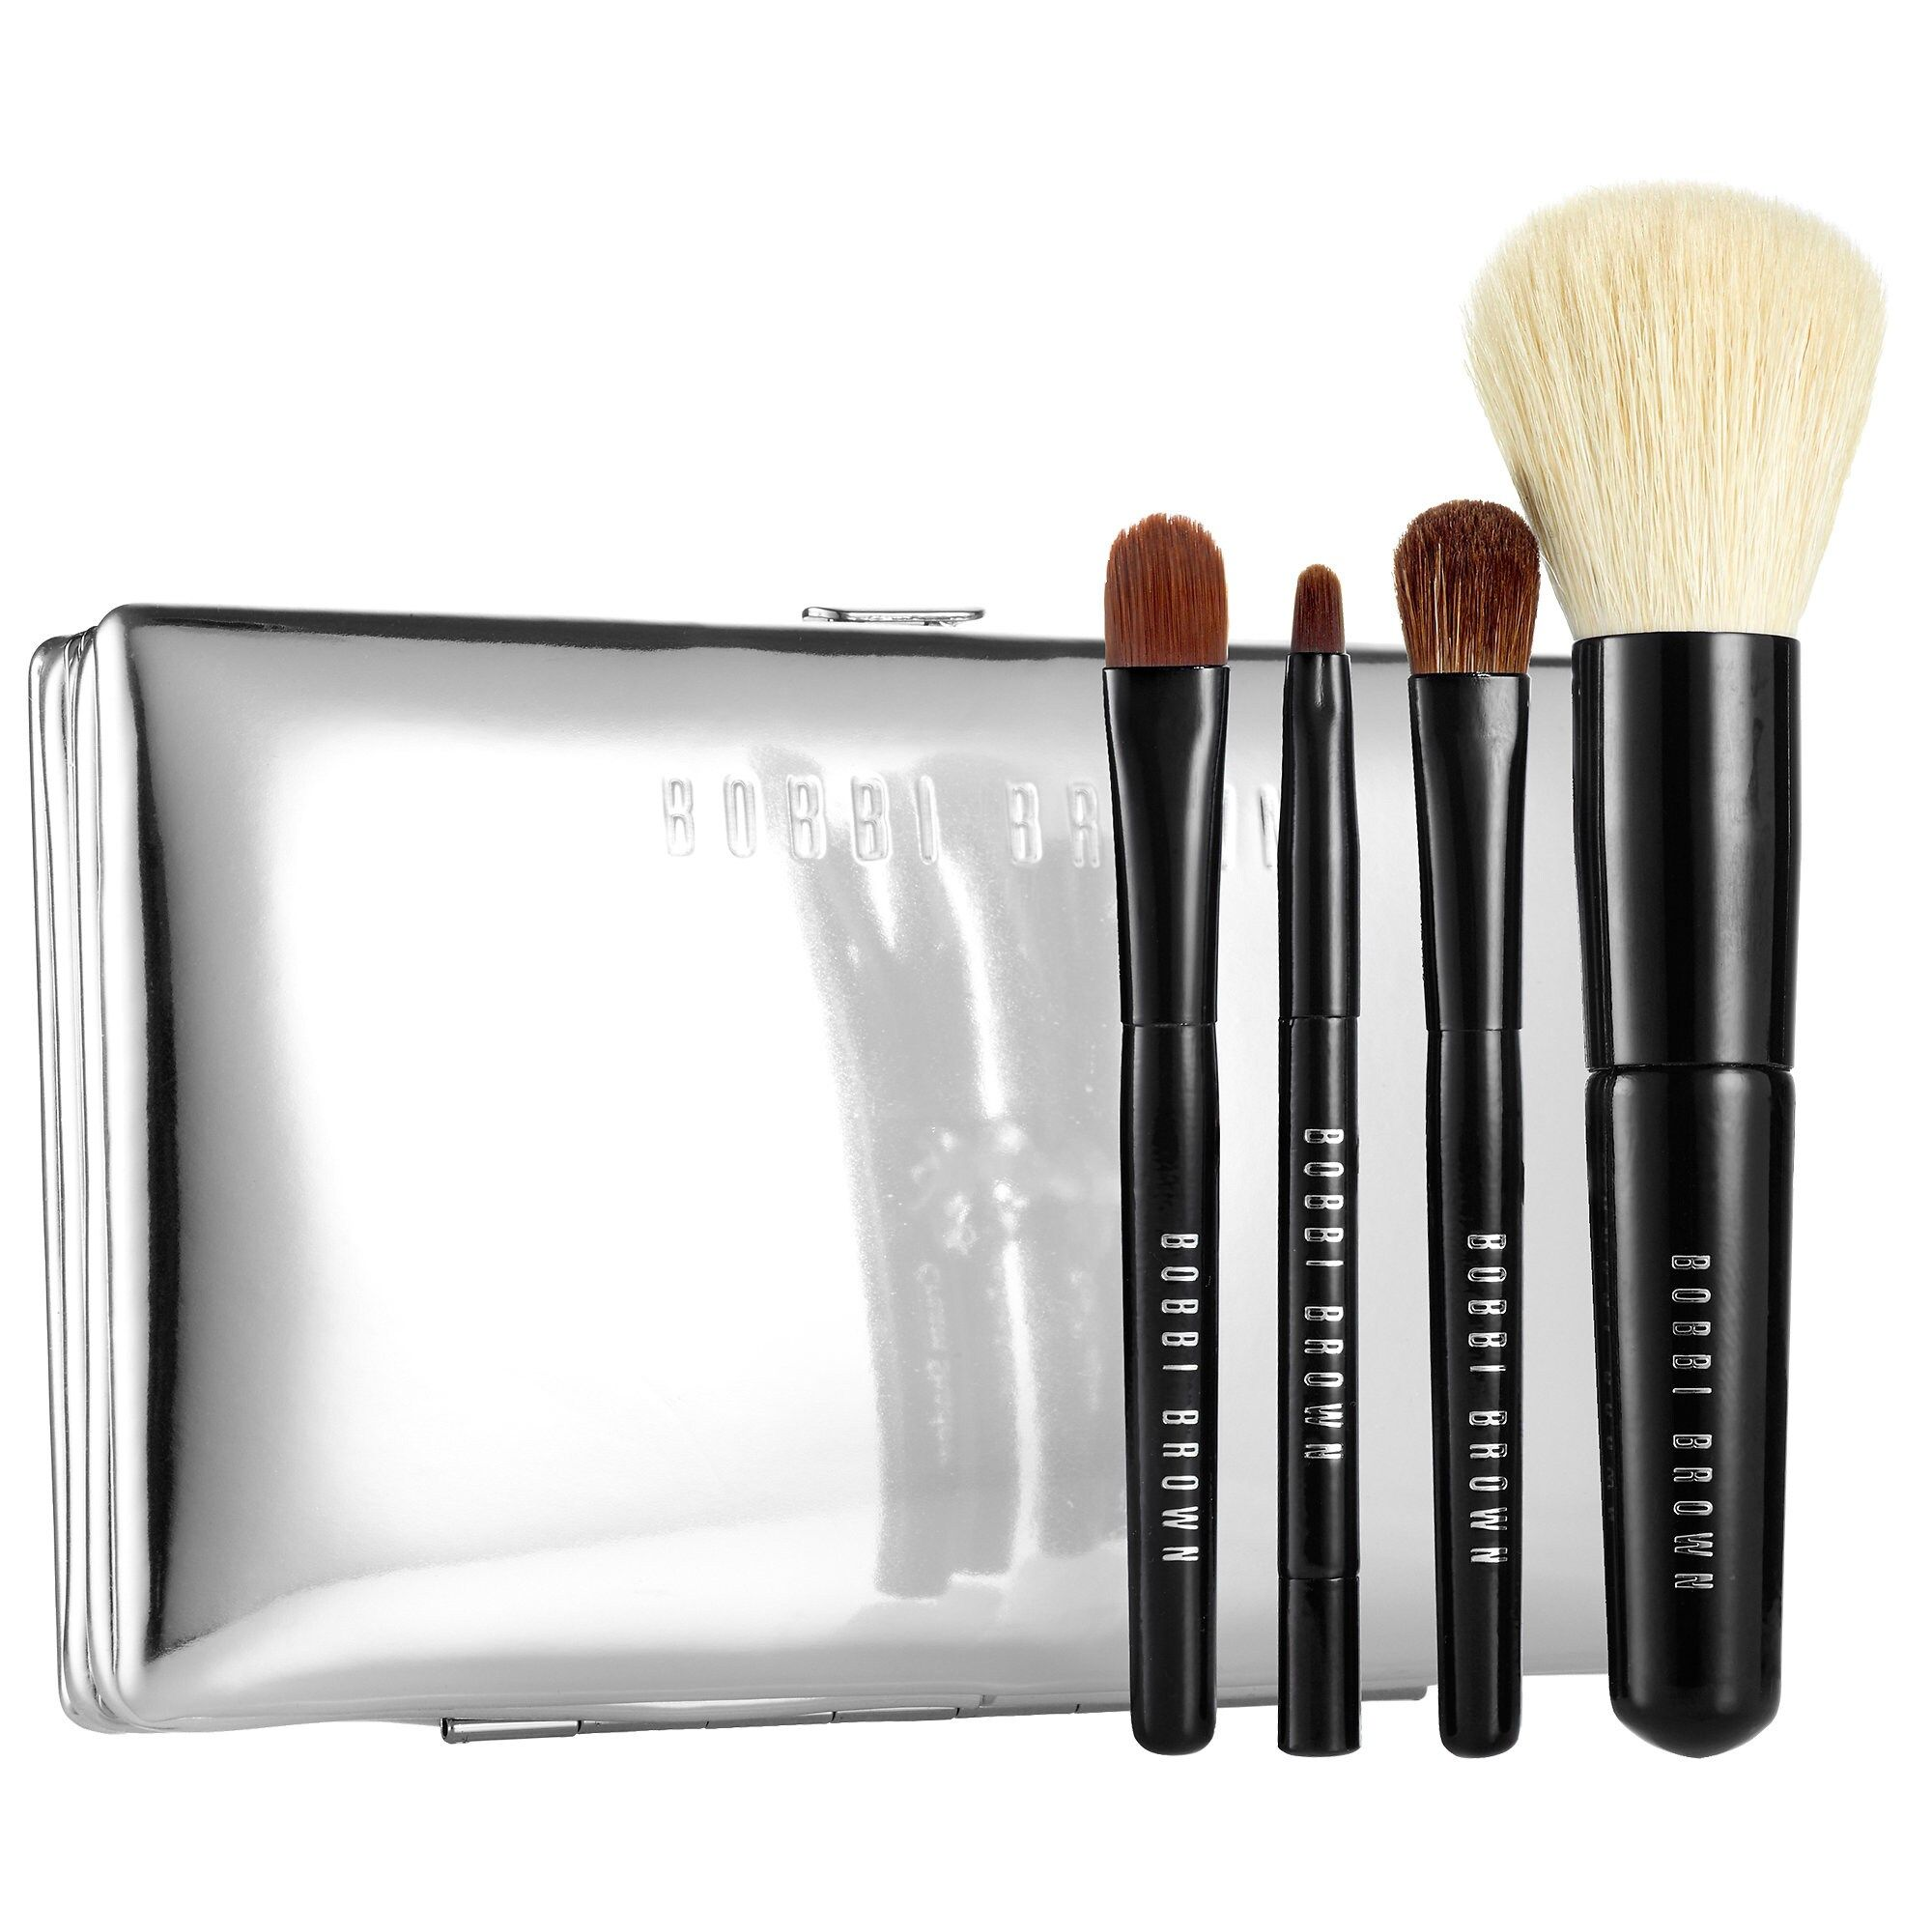 Bobbi Brown Mini Brush Set Bobbi brown makeup brushes